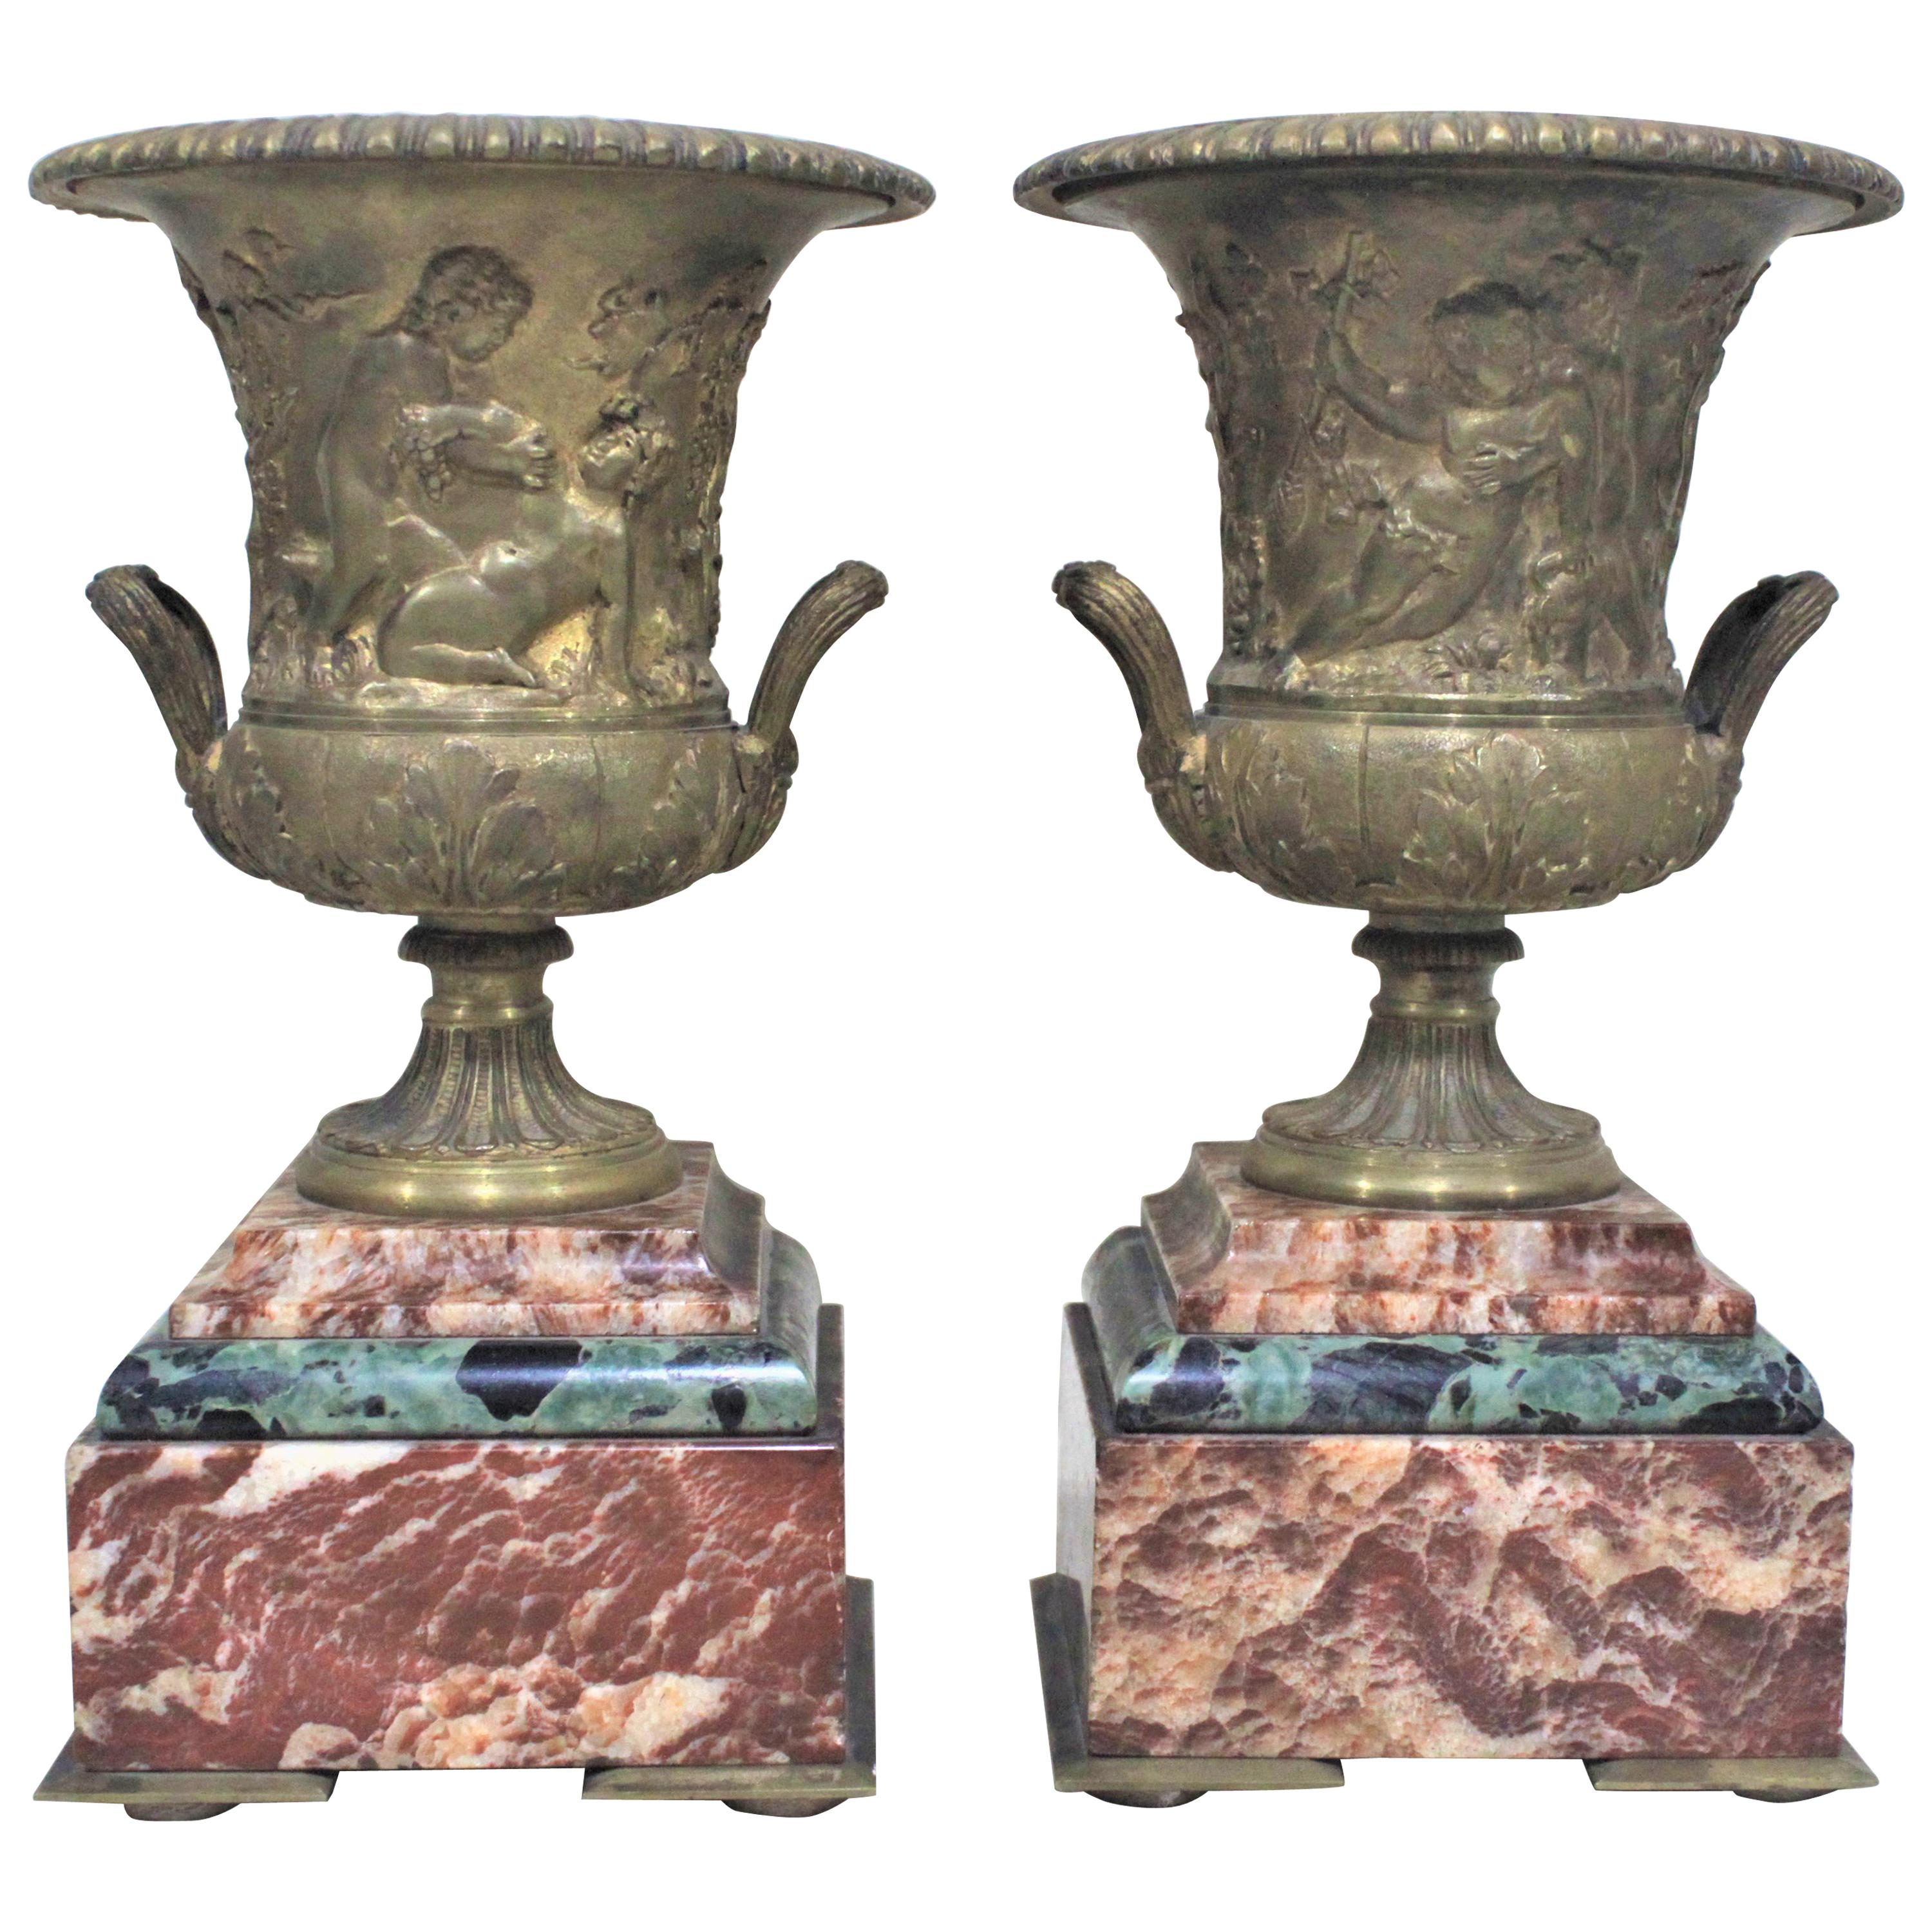 Pair of Gilt Bronze and Polished Marble Garnitures or Urns